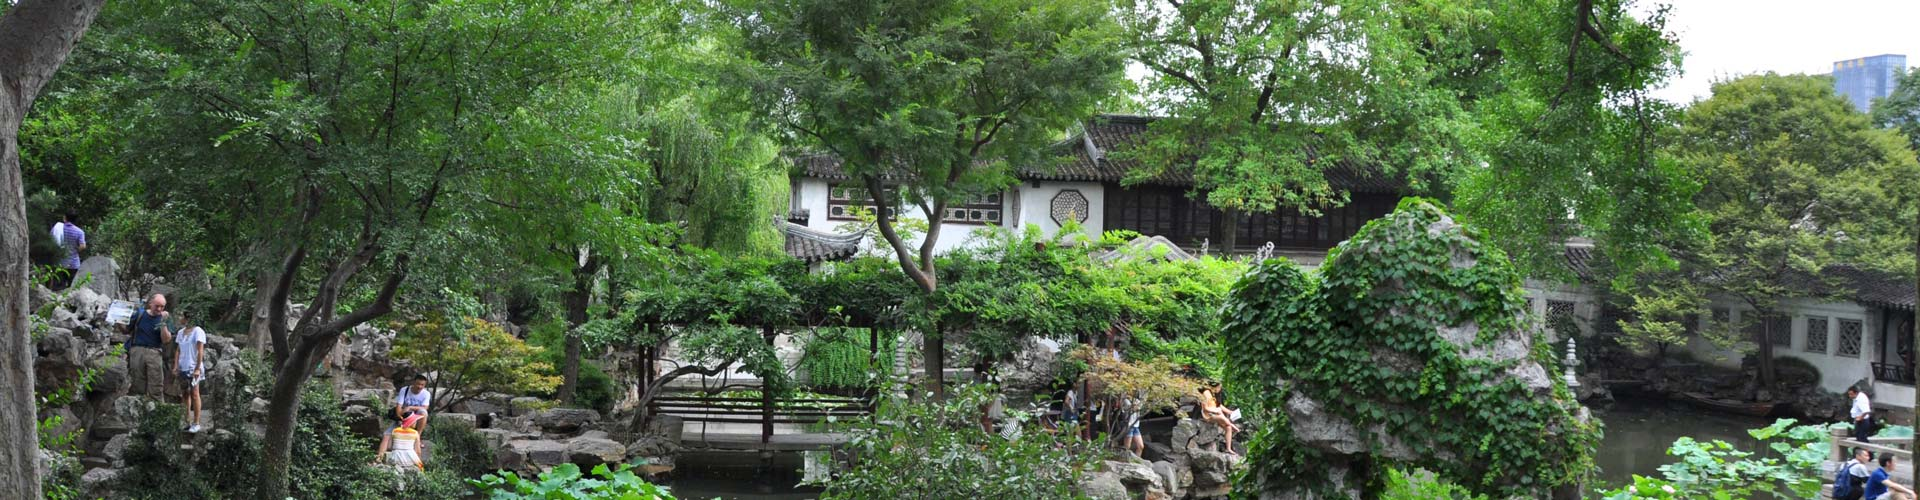 4 Day 3 Night Shanghai, Zhouzhuang and Suzhou Tour Packag